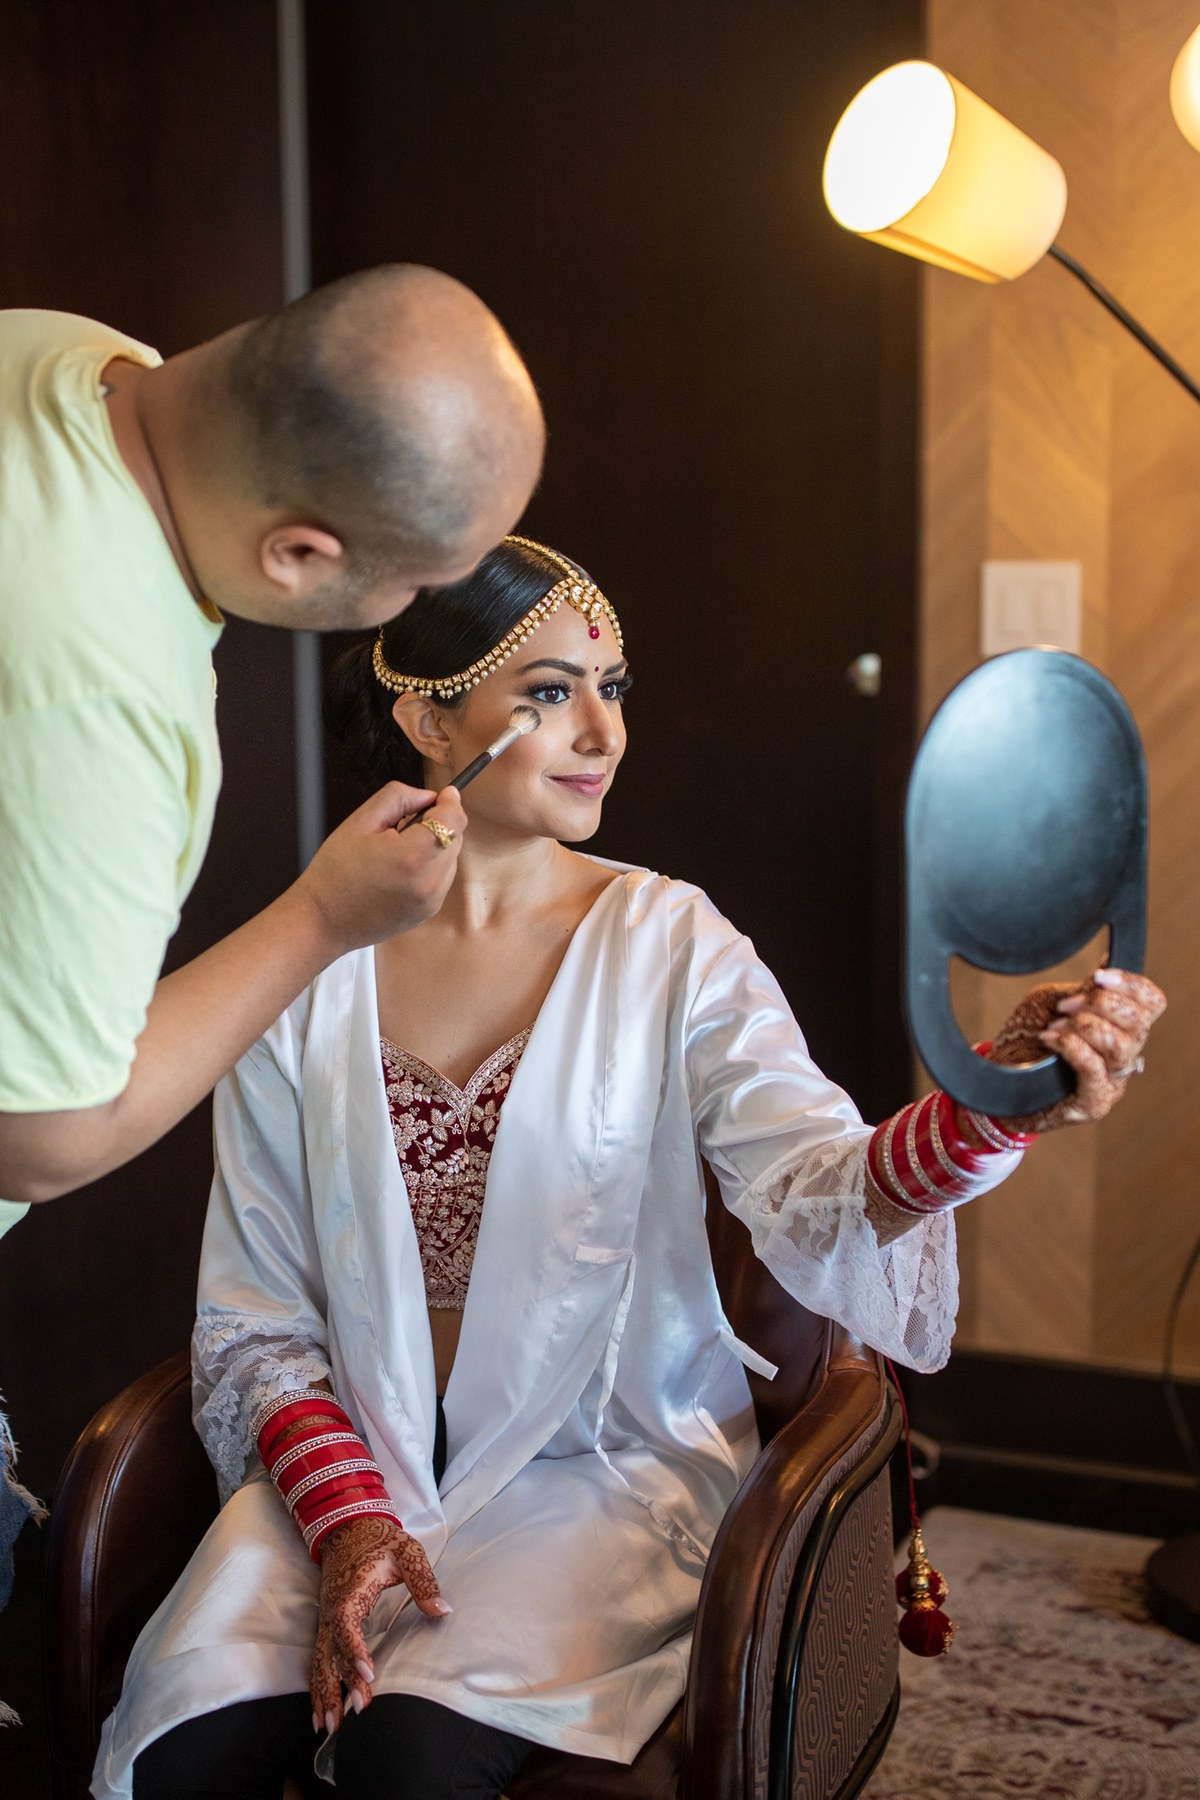 Le_Cape_Weddings_-_Serena_and_Kylash_-_Chicago_South_Asian_Wedding_-_Bride_Getting_Ready-18.jpg